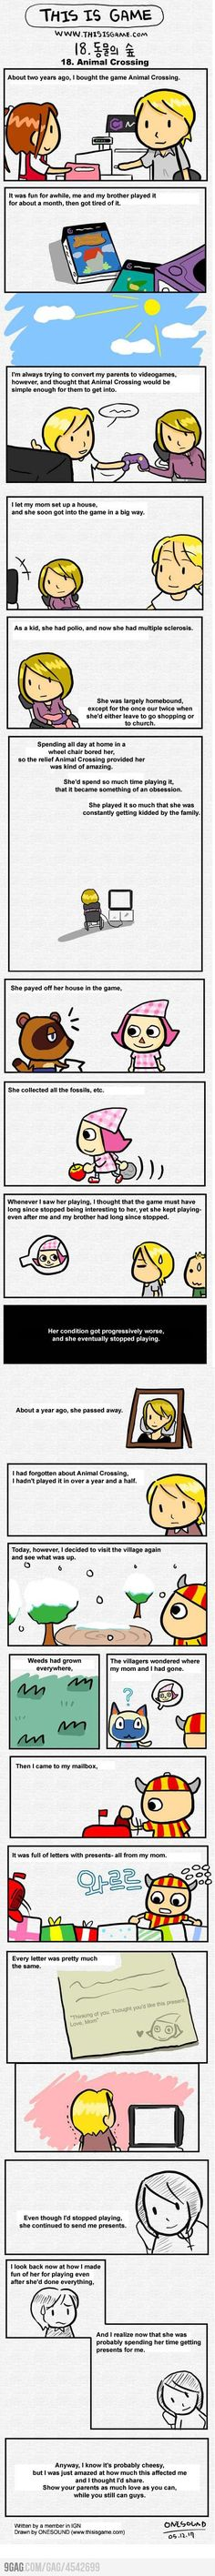 Animal Crossing Tragedy [Touching story]- I seen this a long time ago but every time I see it, it touches me. So sweet/sad.